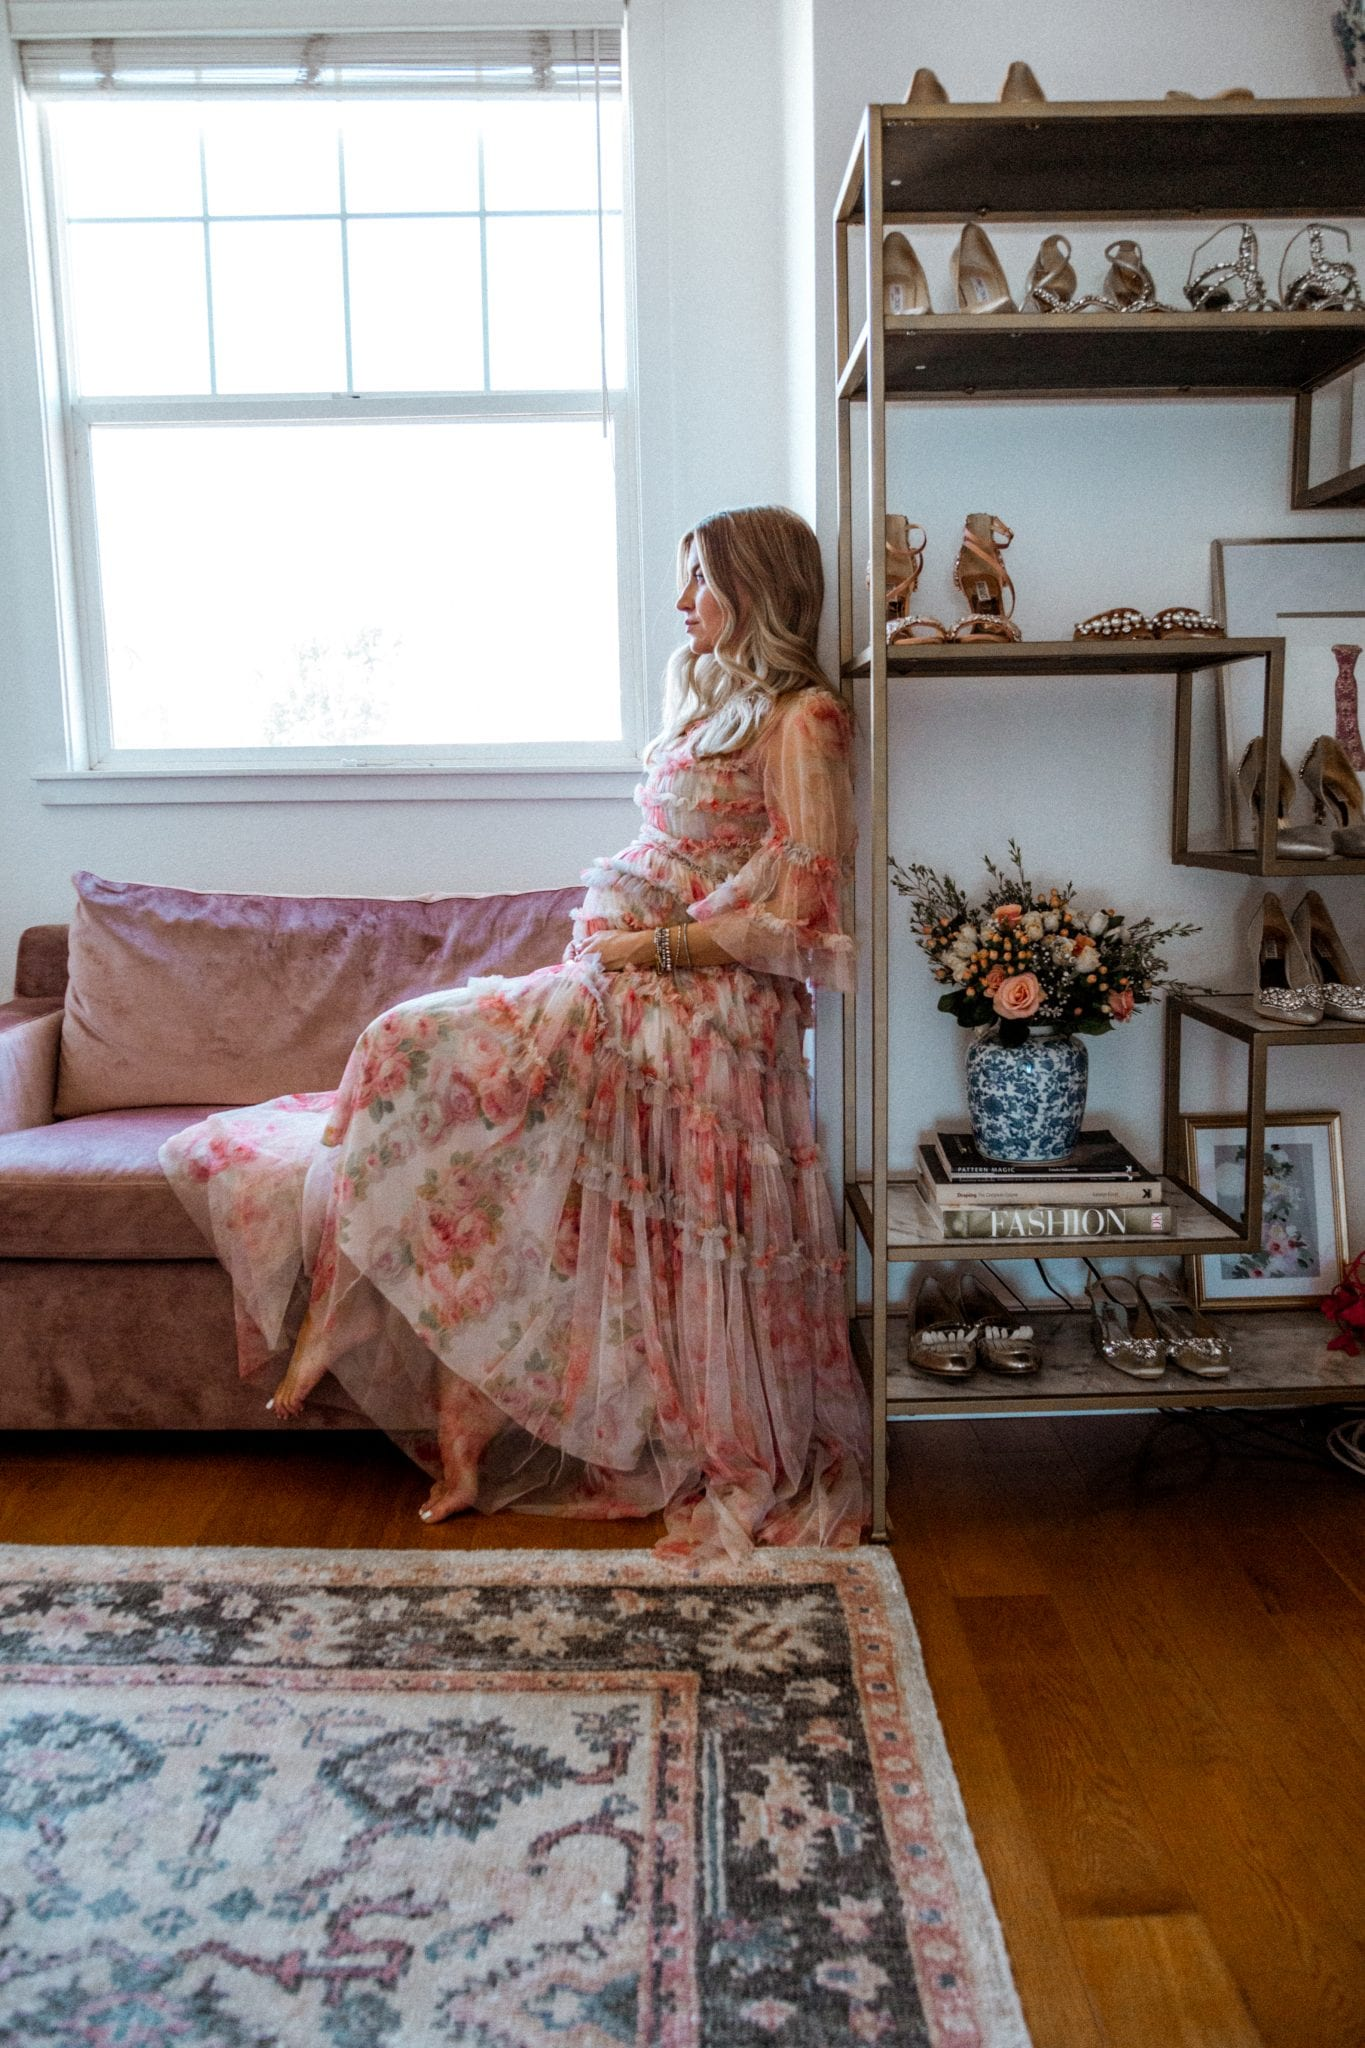 Second Trimester Pregnancy, Needle and Thread Gown